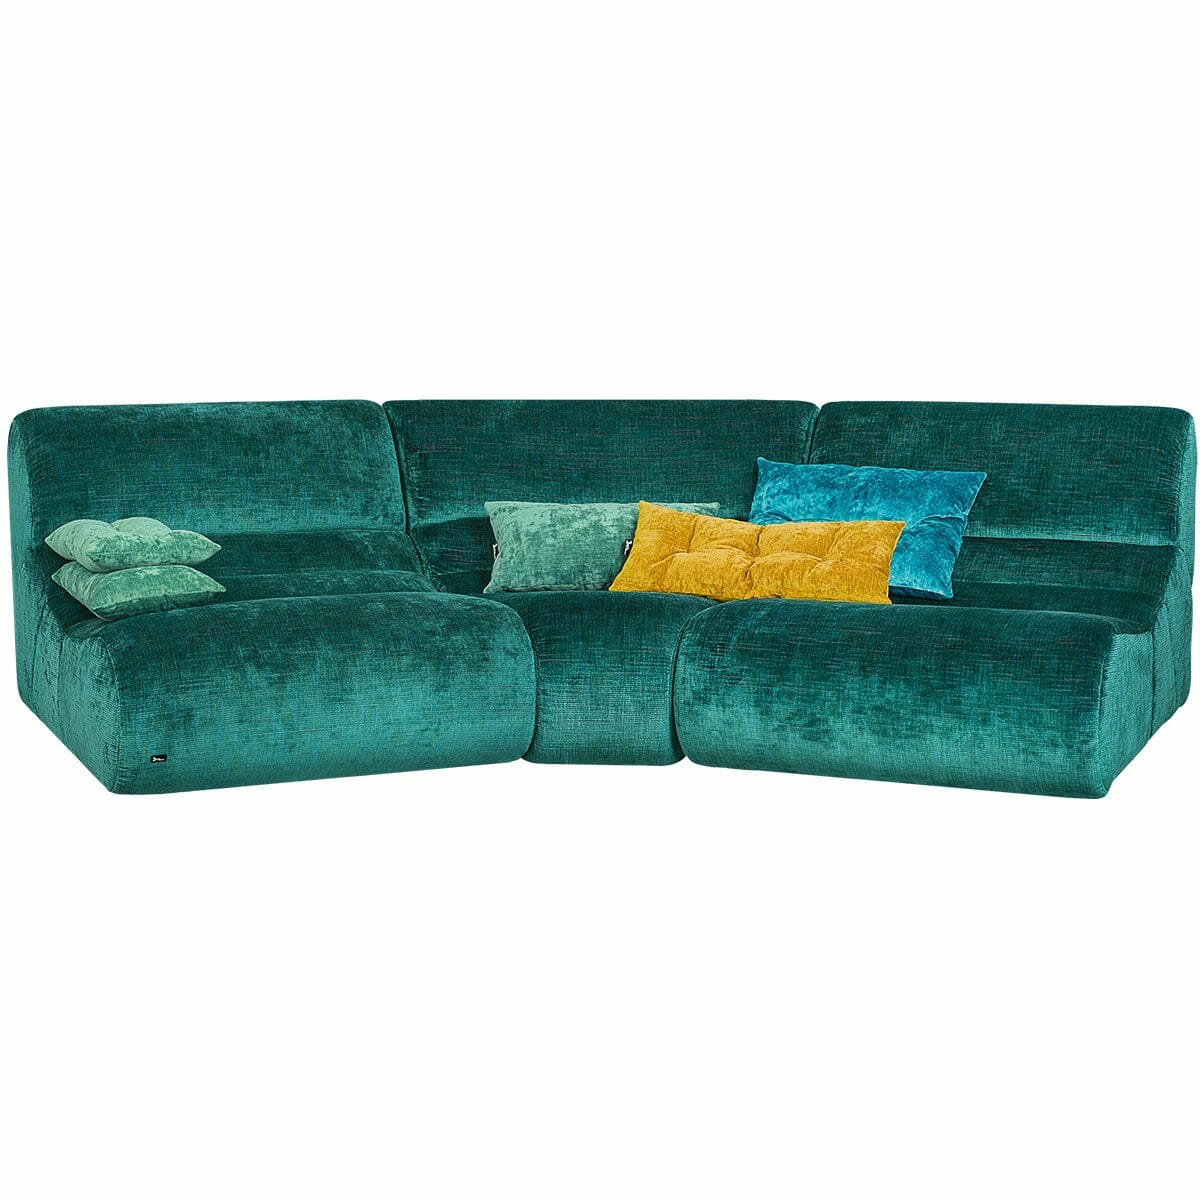 Bretz Sofa MYAMI U-S-U in türkis Mix